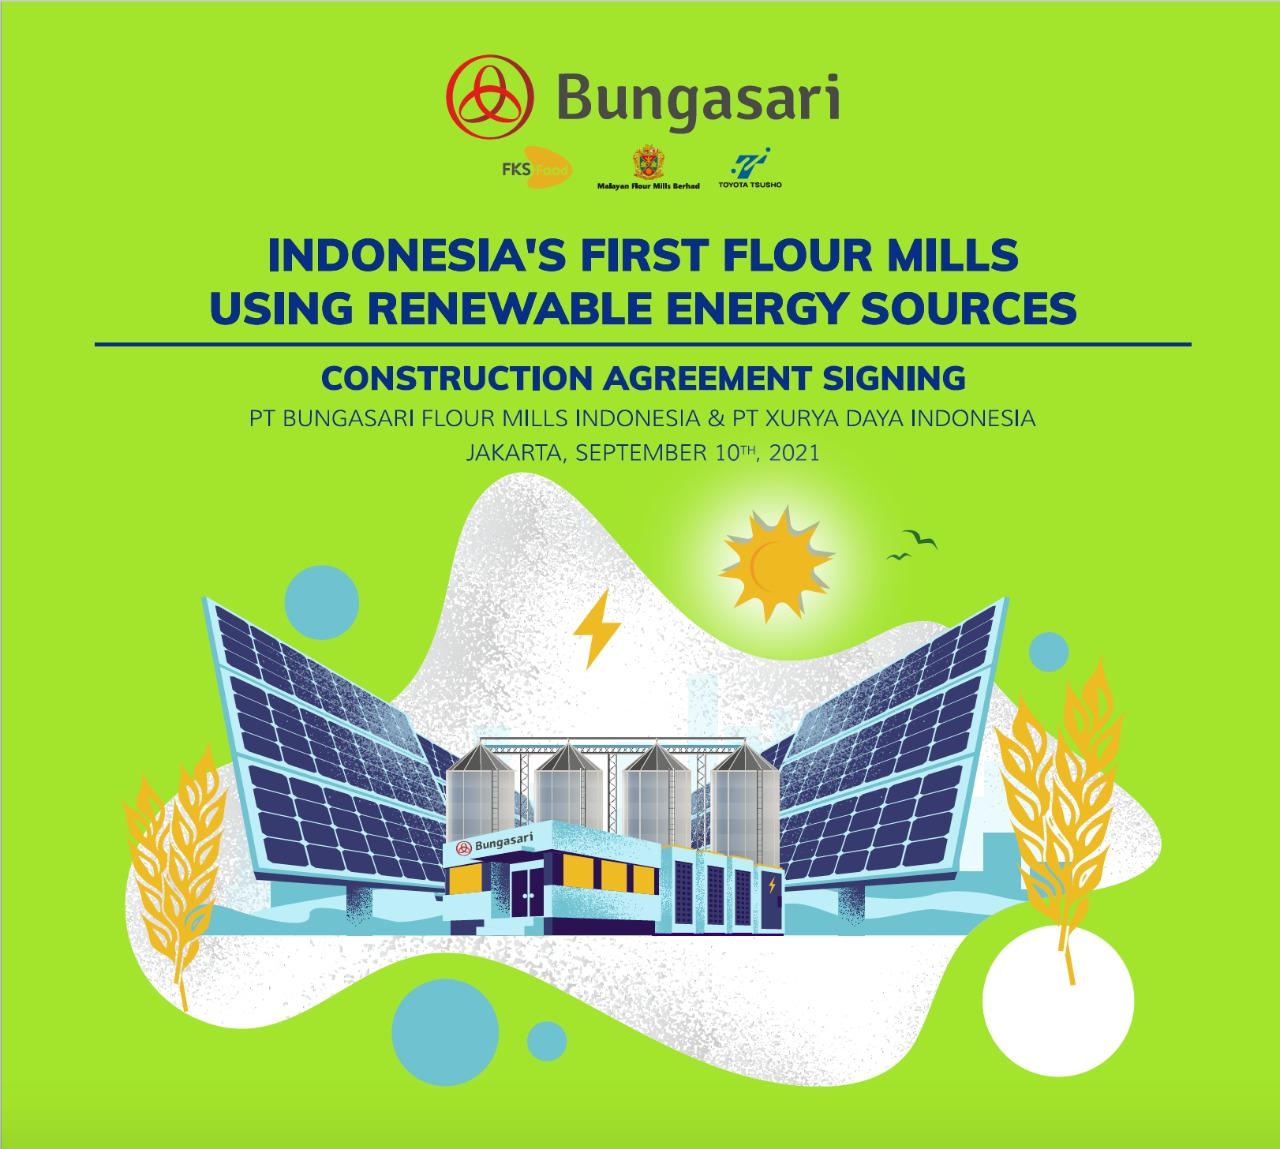 Indonesia's First Flour Mills Using Renewable Energy Sources